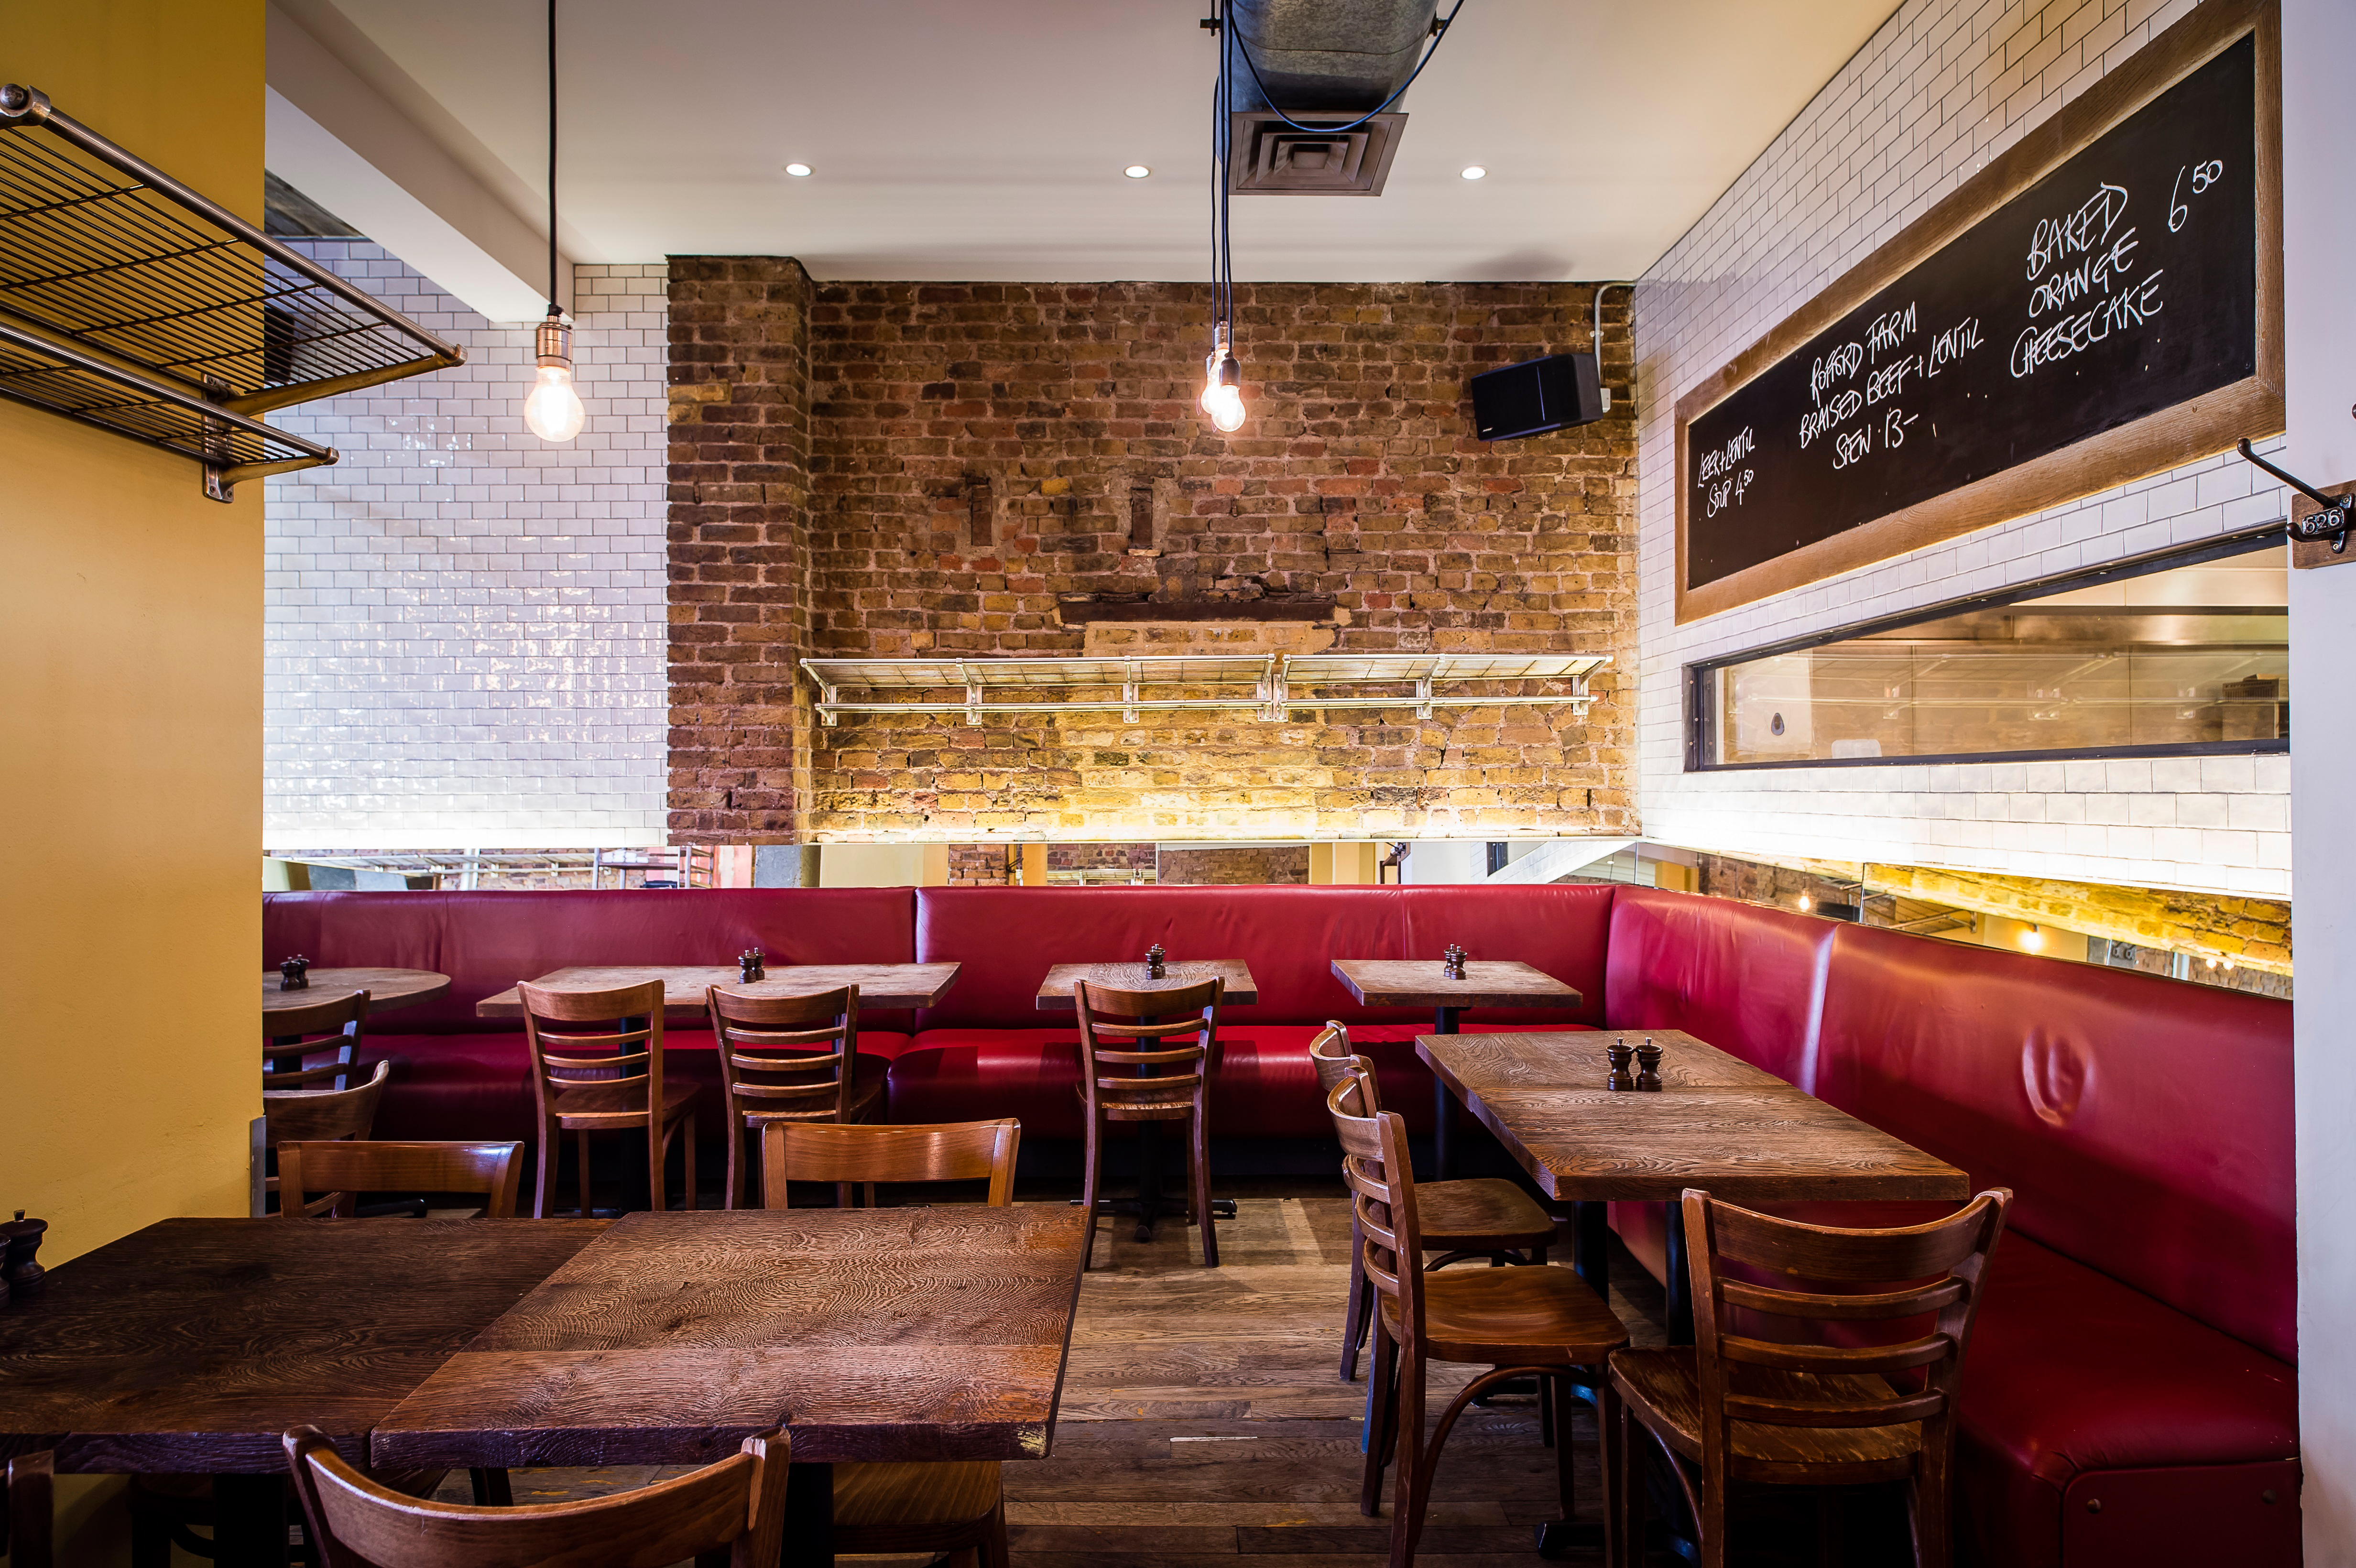 Sophie's Steakhouse and Bar - Chelsea - London